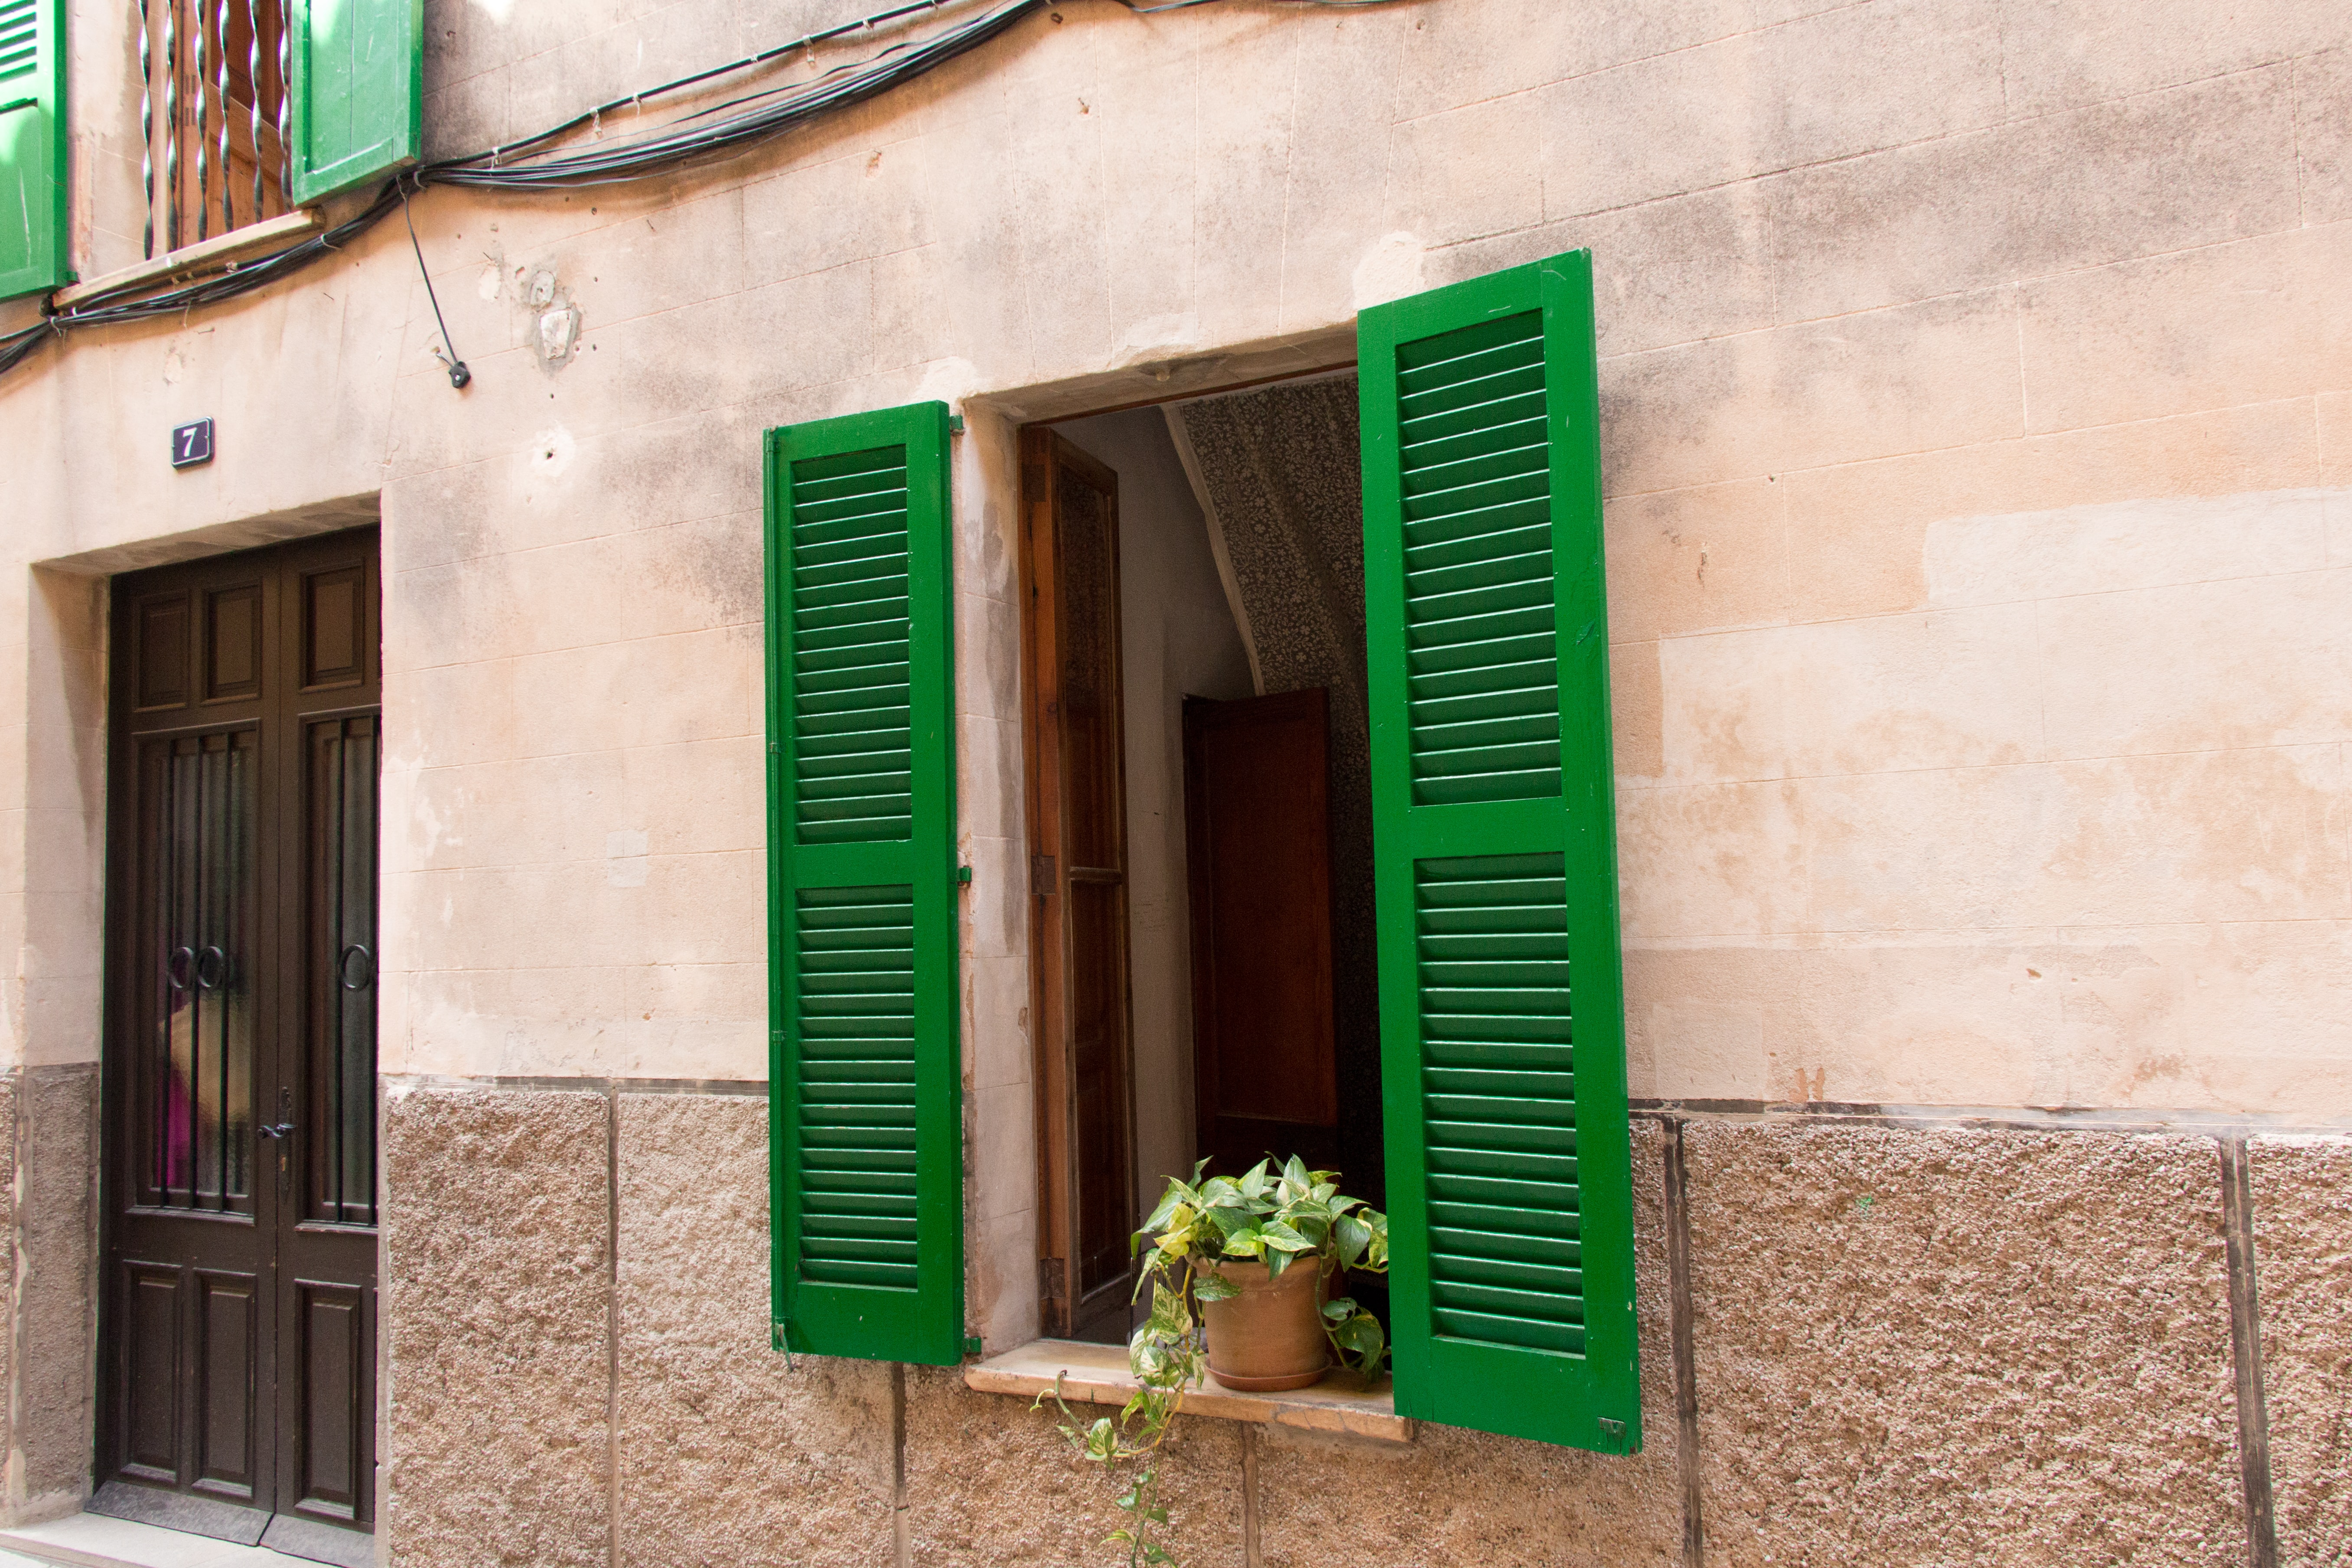 Tan building with green shutters and a potted plant on the windowsill near a brown door